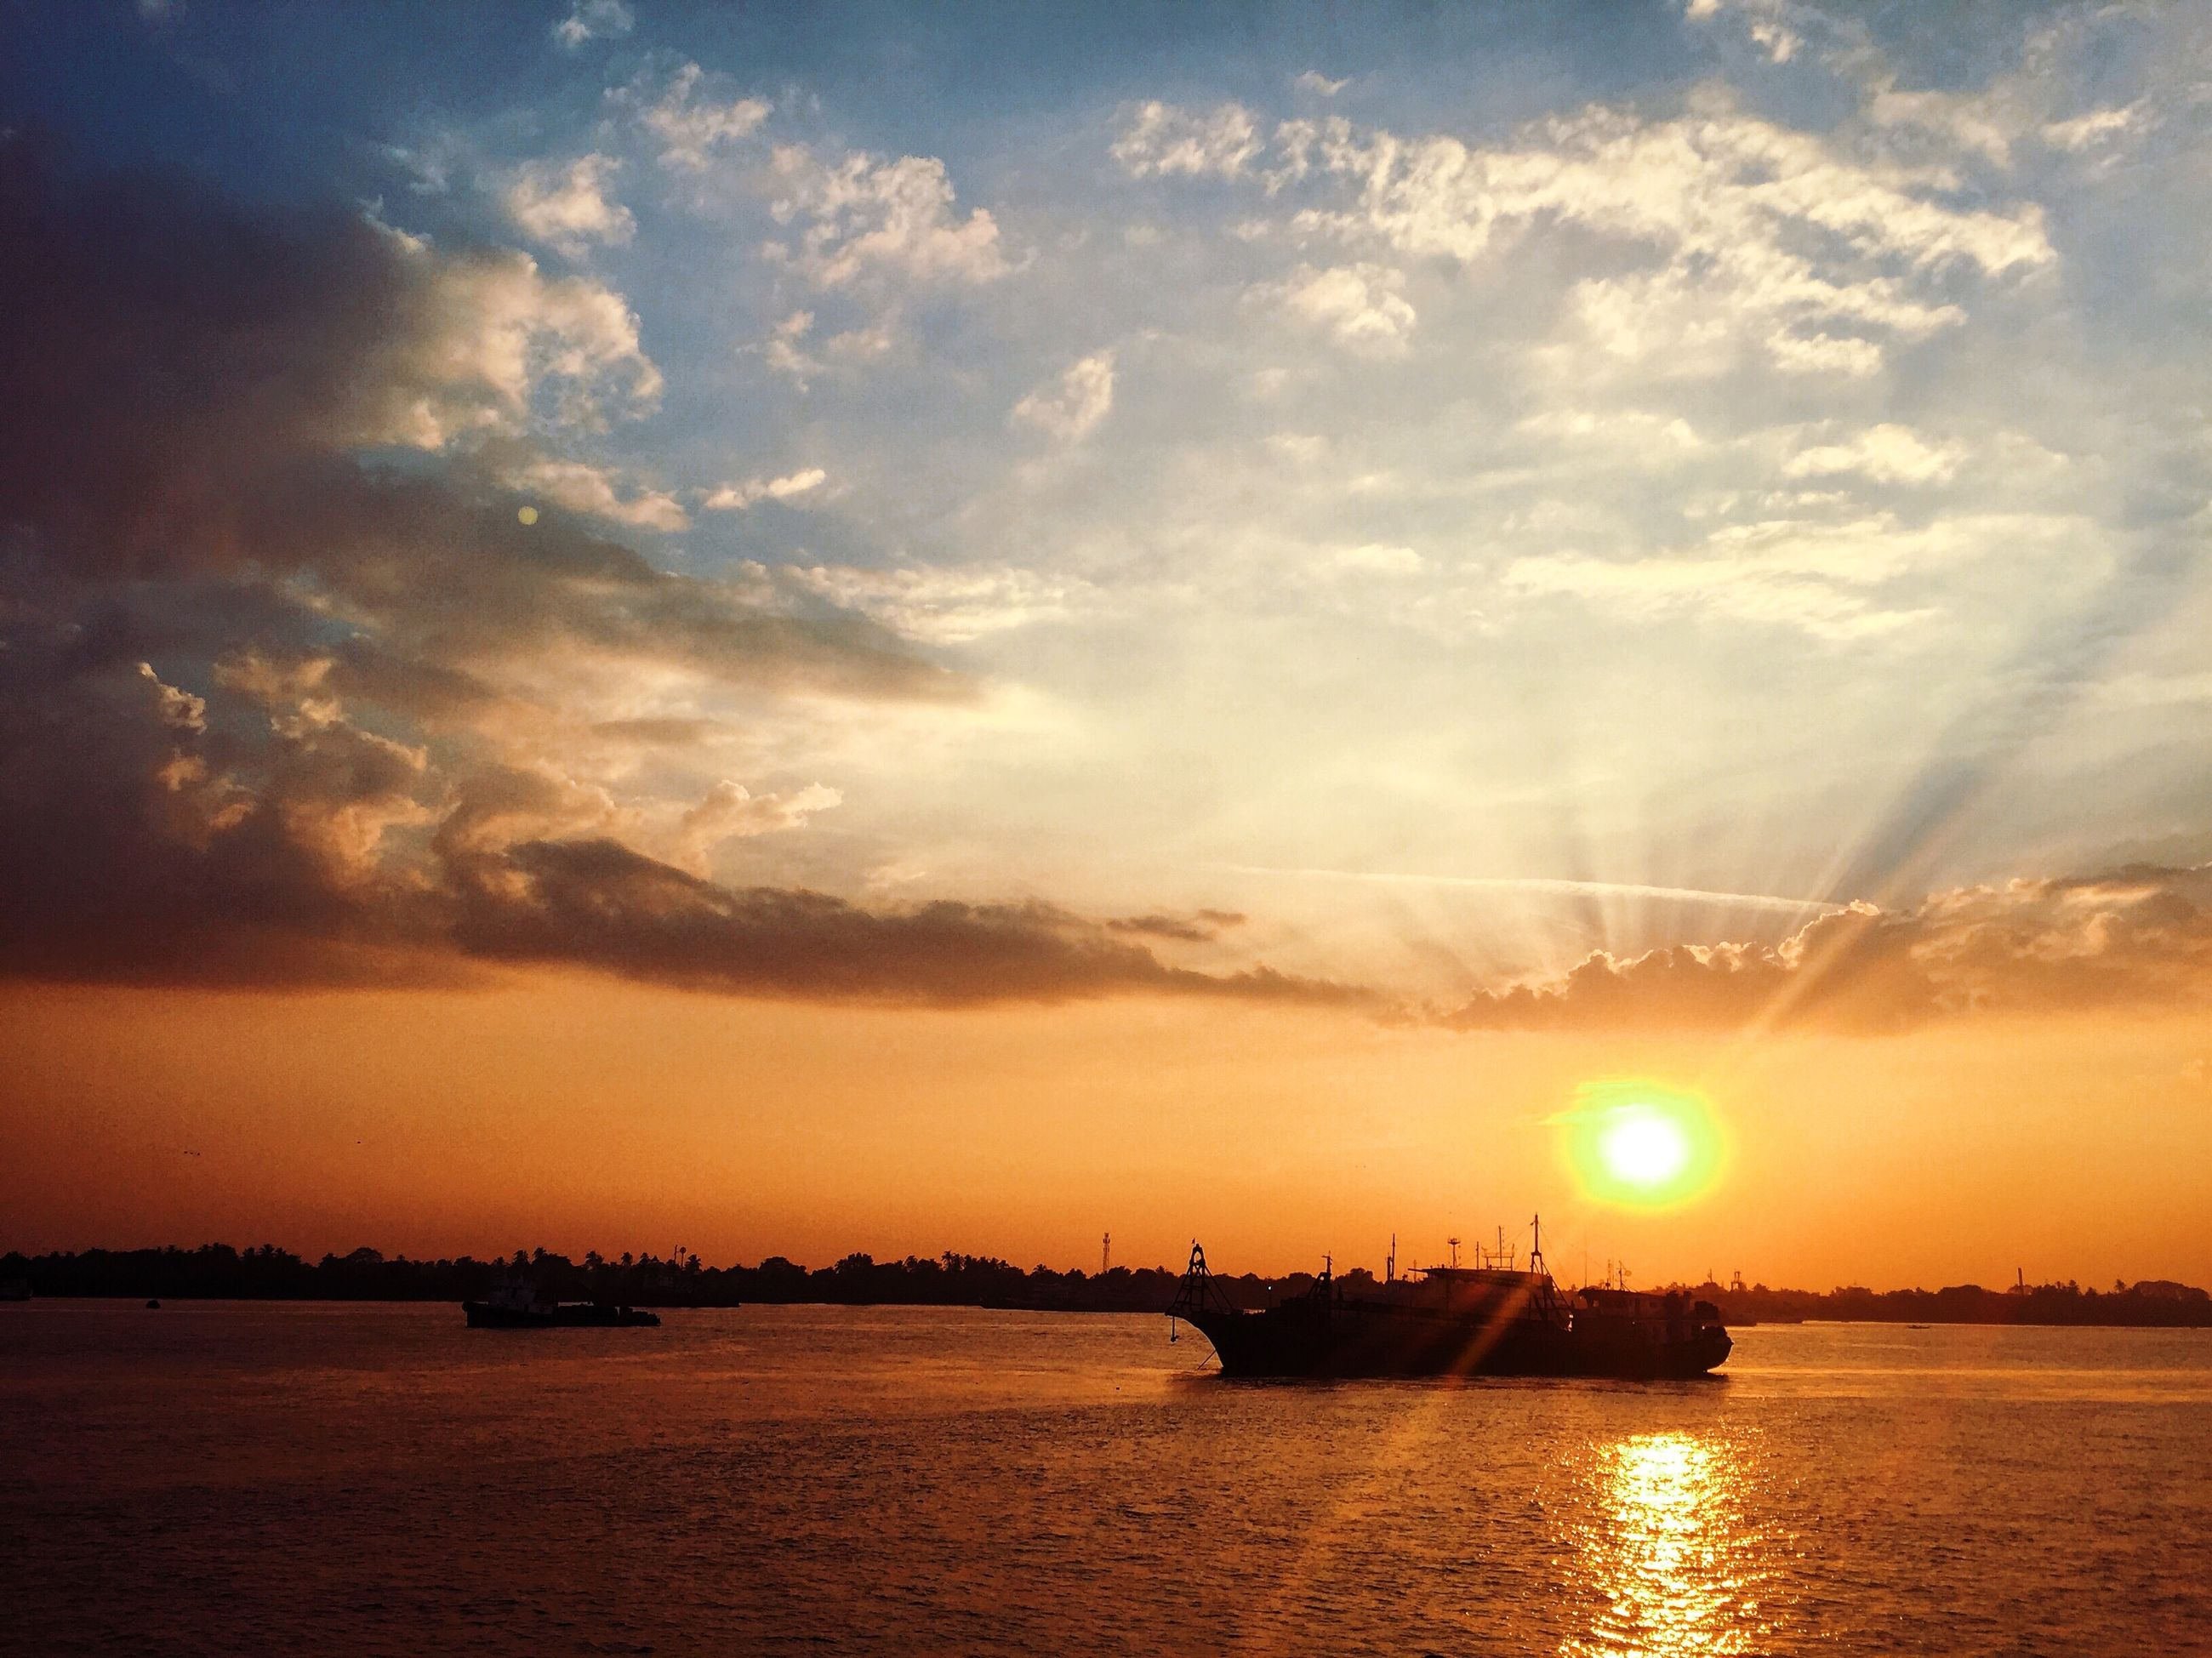 sunset, water, sun, waterfront, sky, scenics, sea, tranquil scene, beauty in nature, tranquility, orange color, nature, reflection, idyllic, cloud - sky, sunlight, river, sunbeam, silhouette, rippled